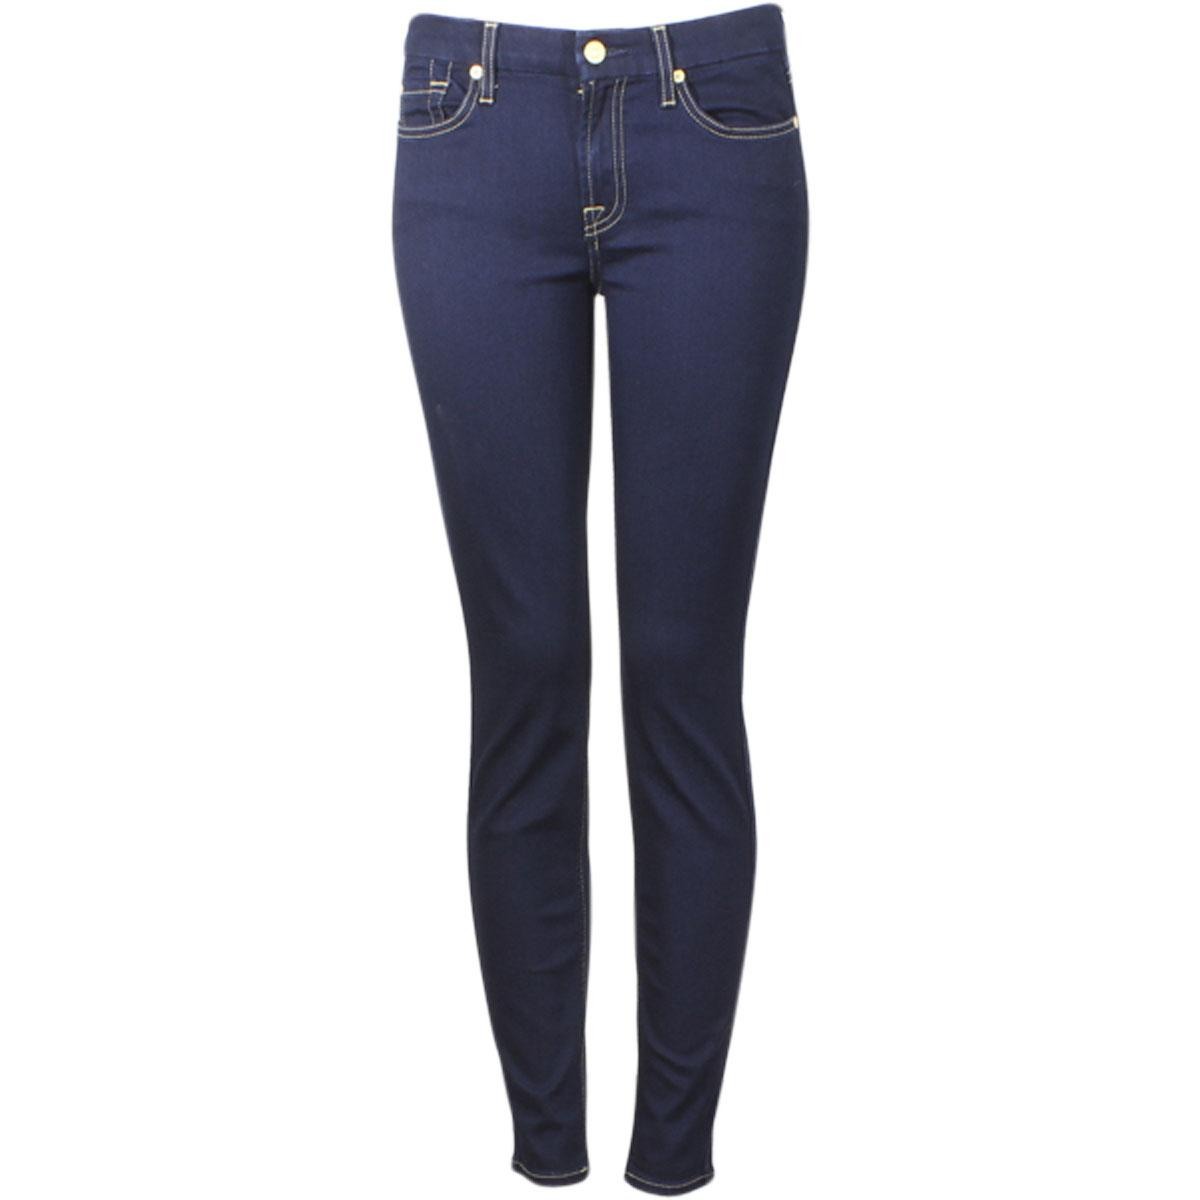 Image of 7 For All Mankind Women's (B)Air Denim The Skinny Jeans - Blue - 24 (00)